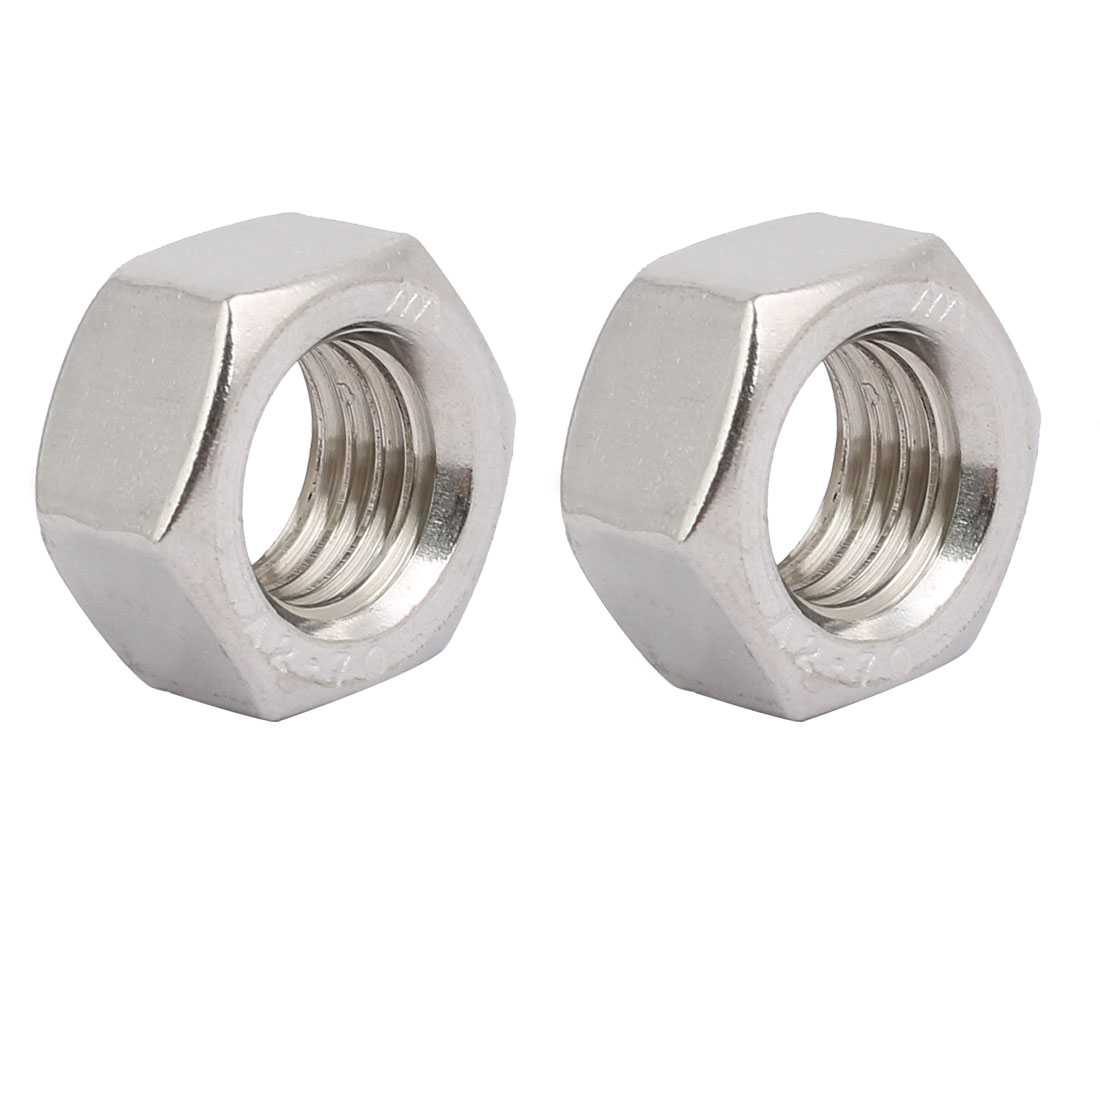 2pcs M18 x 2.5mm Pitch Metric Thread 201 Stainless Steel Left Hand Hex Nuts